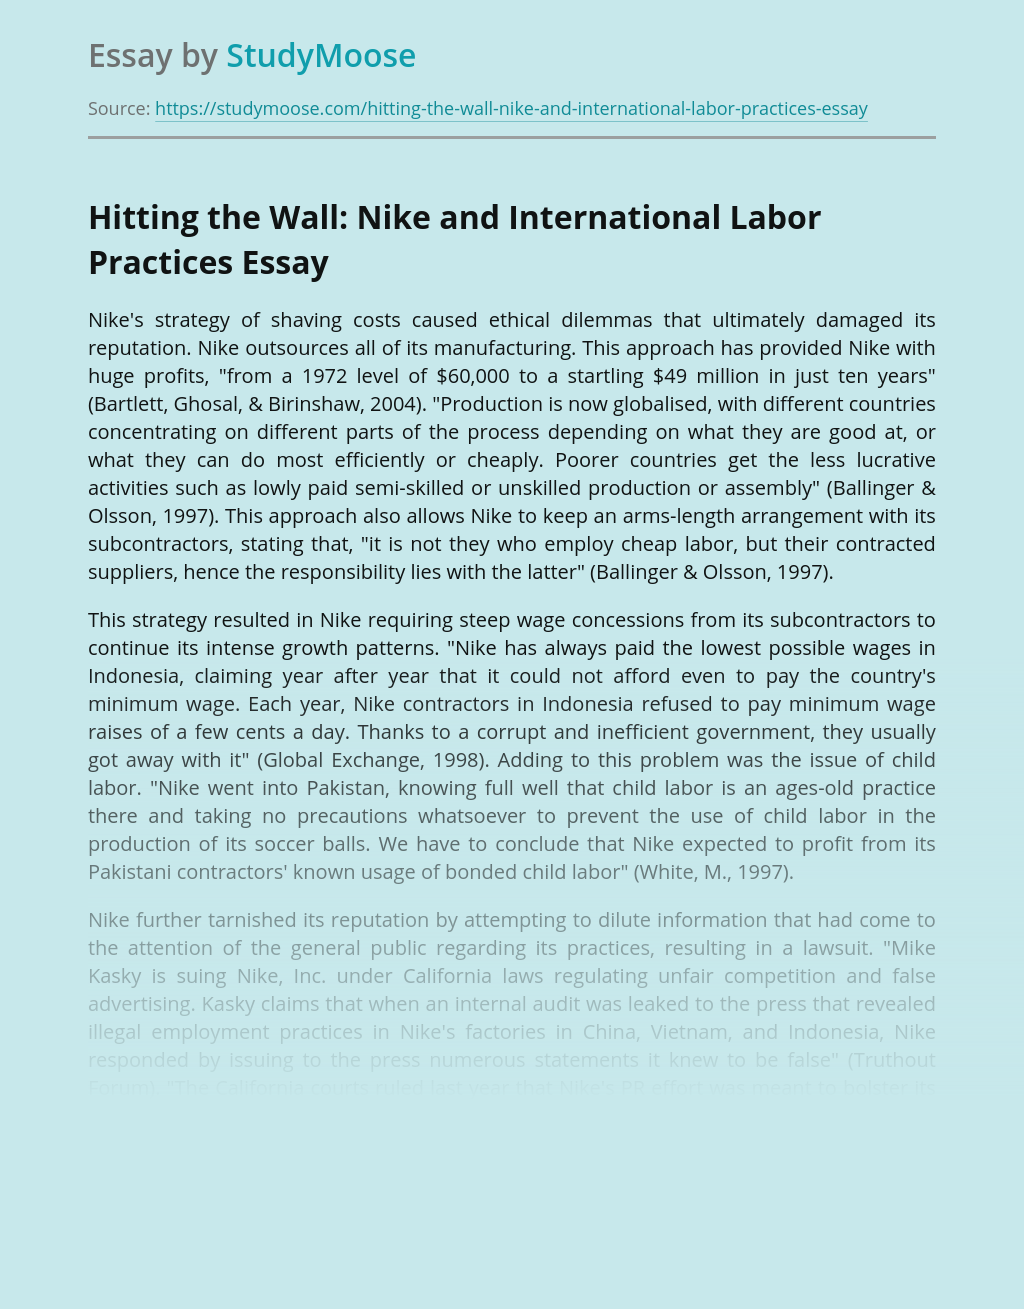 Nike's Outsourced Manufacturing